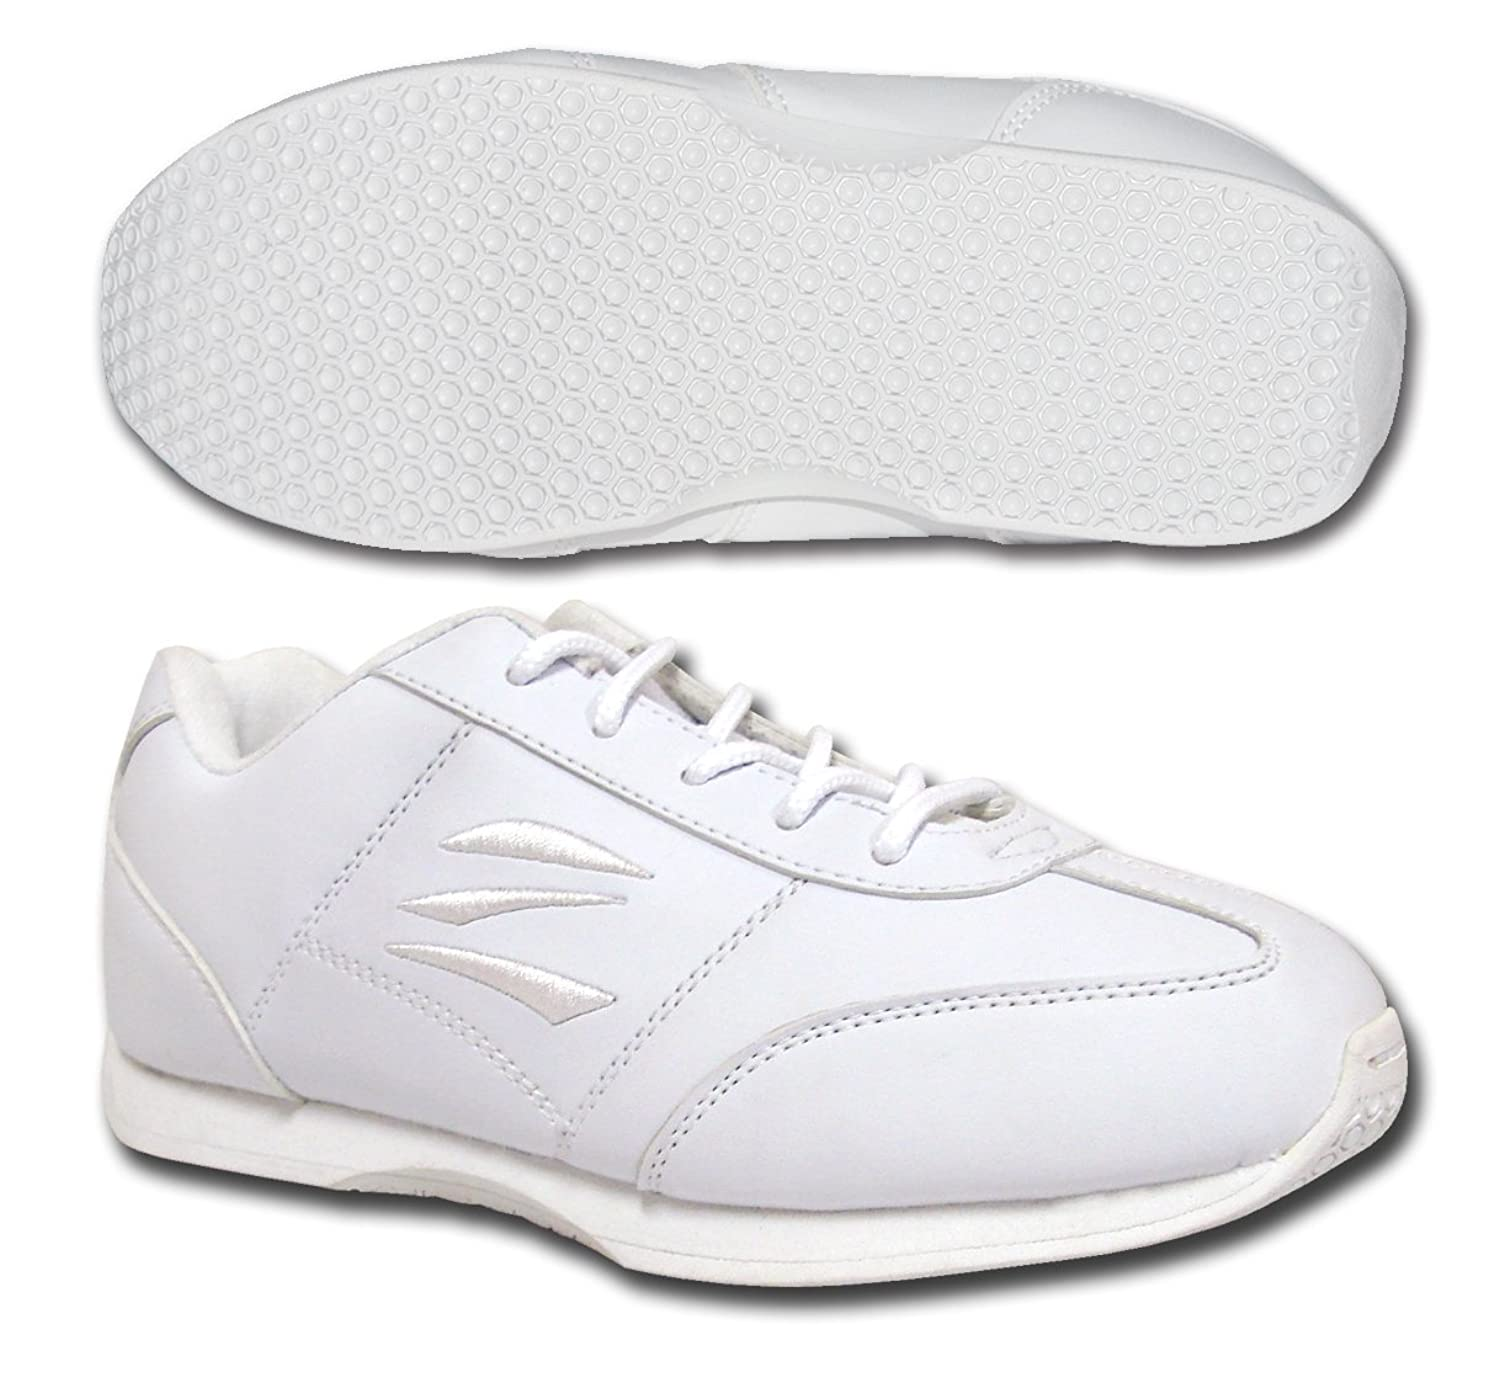 da6b6c5ceca Tumble Cheerleading Shoe Youth